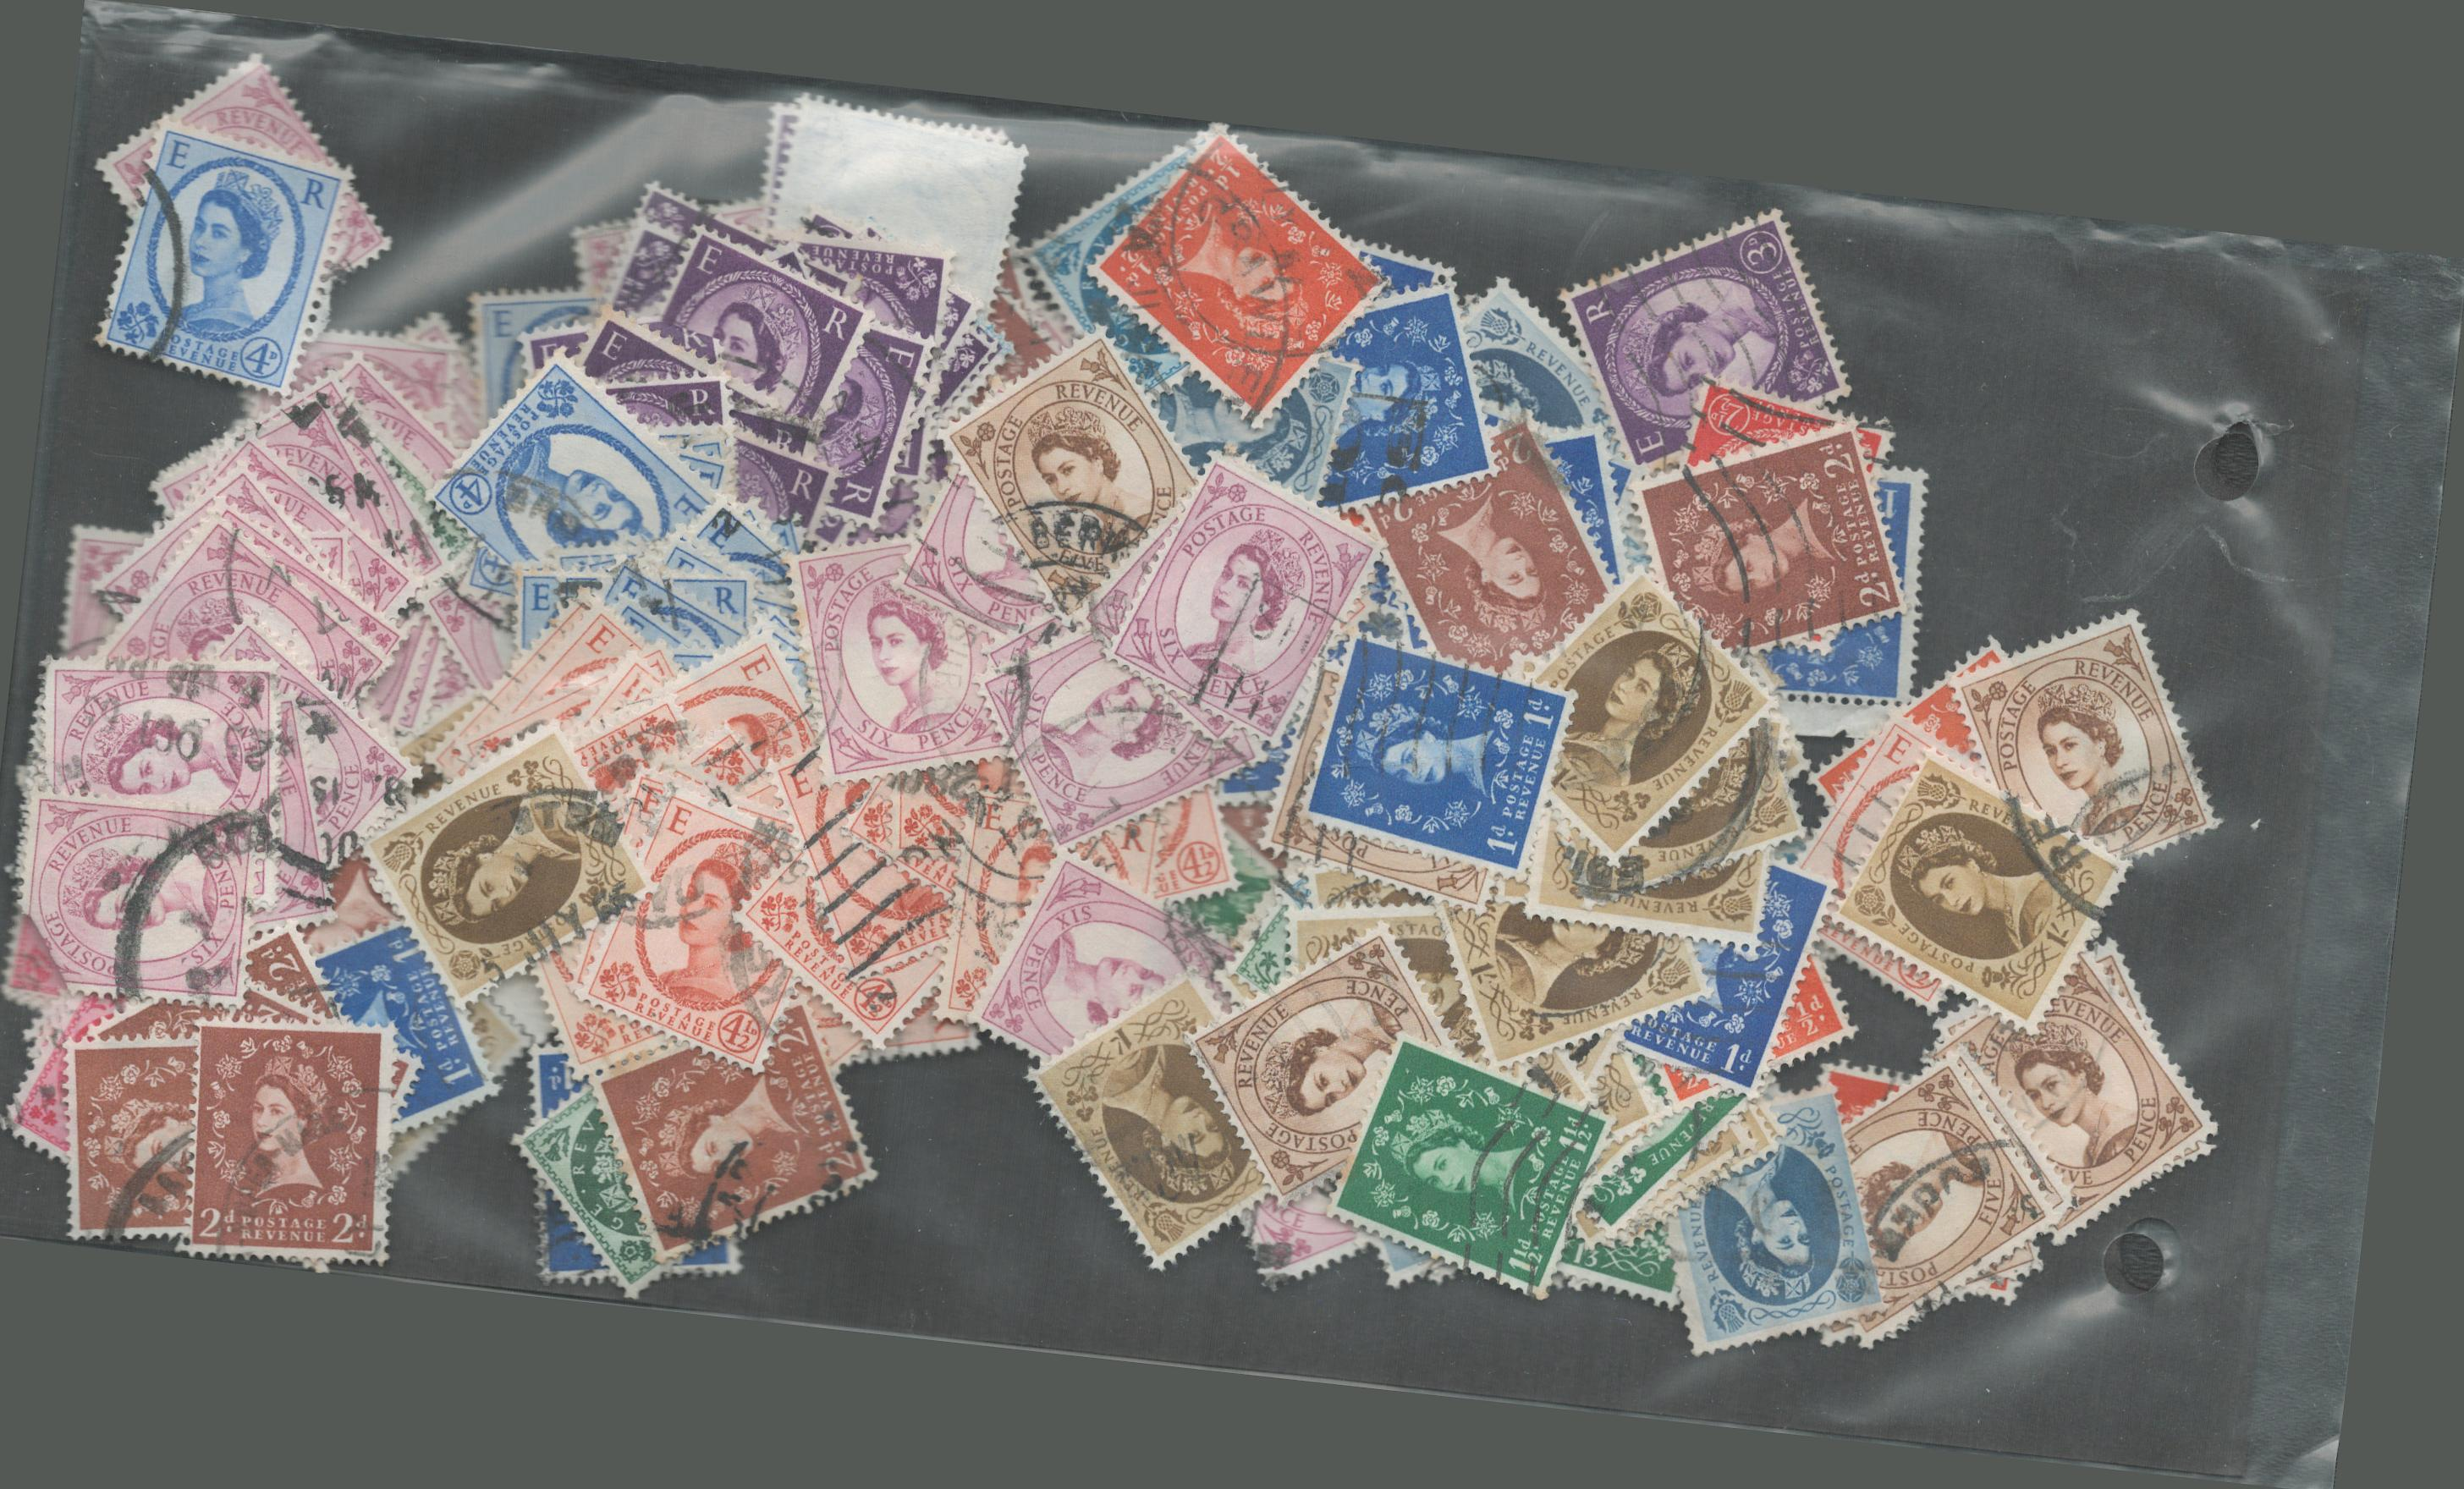 Used stamp collection. Definitives of GB. 1st series of QEII. Includes phosphor, side watermarks and